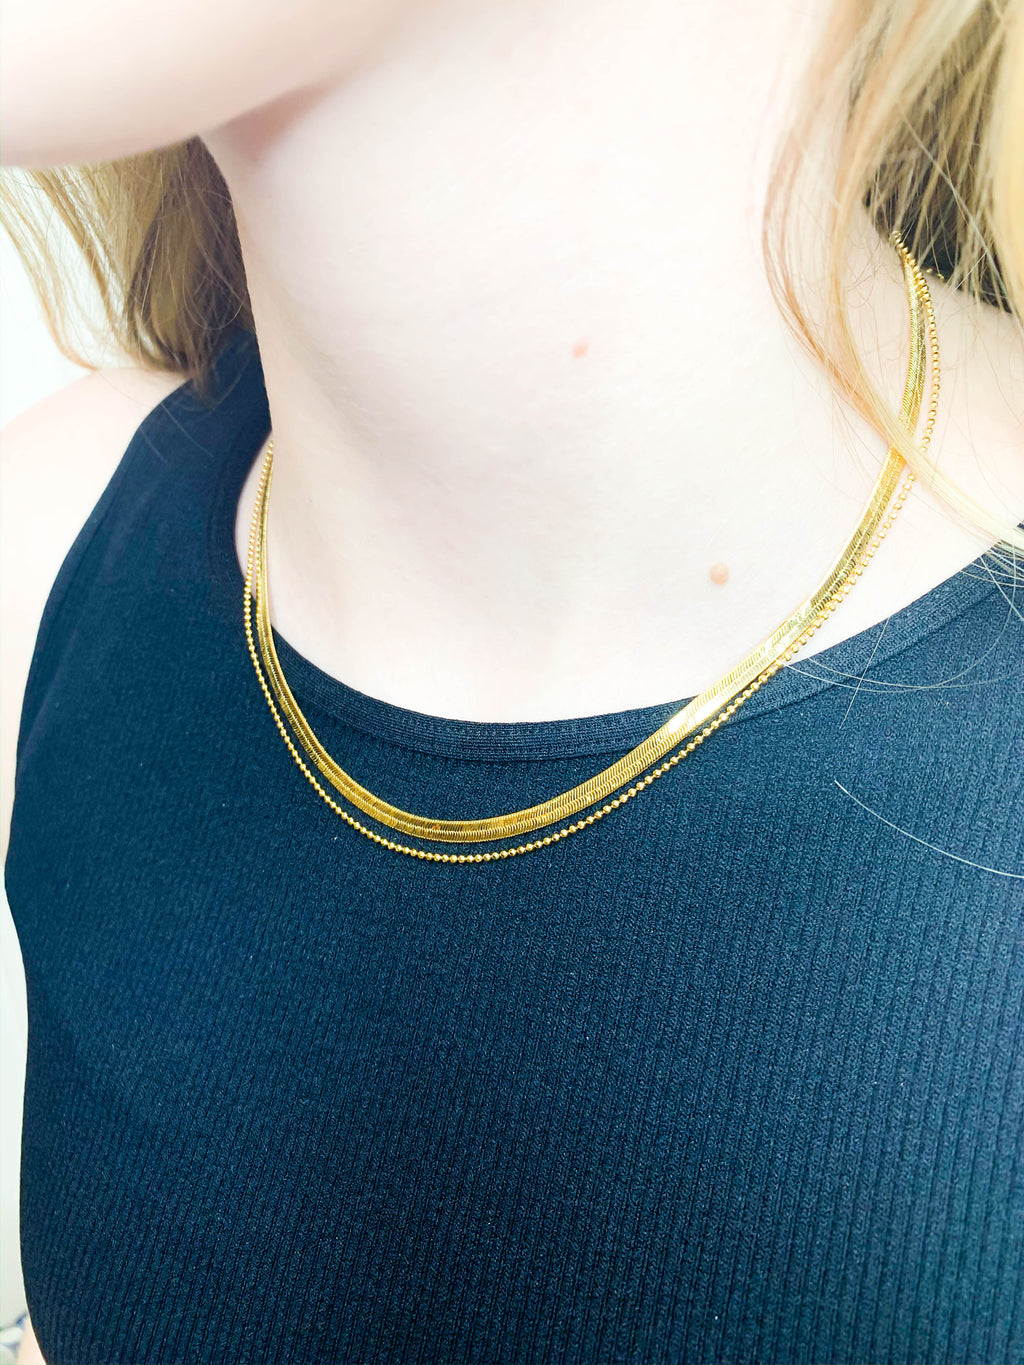 Lara Layered Necklace - Gold